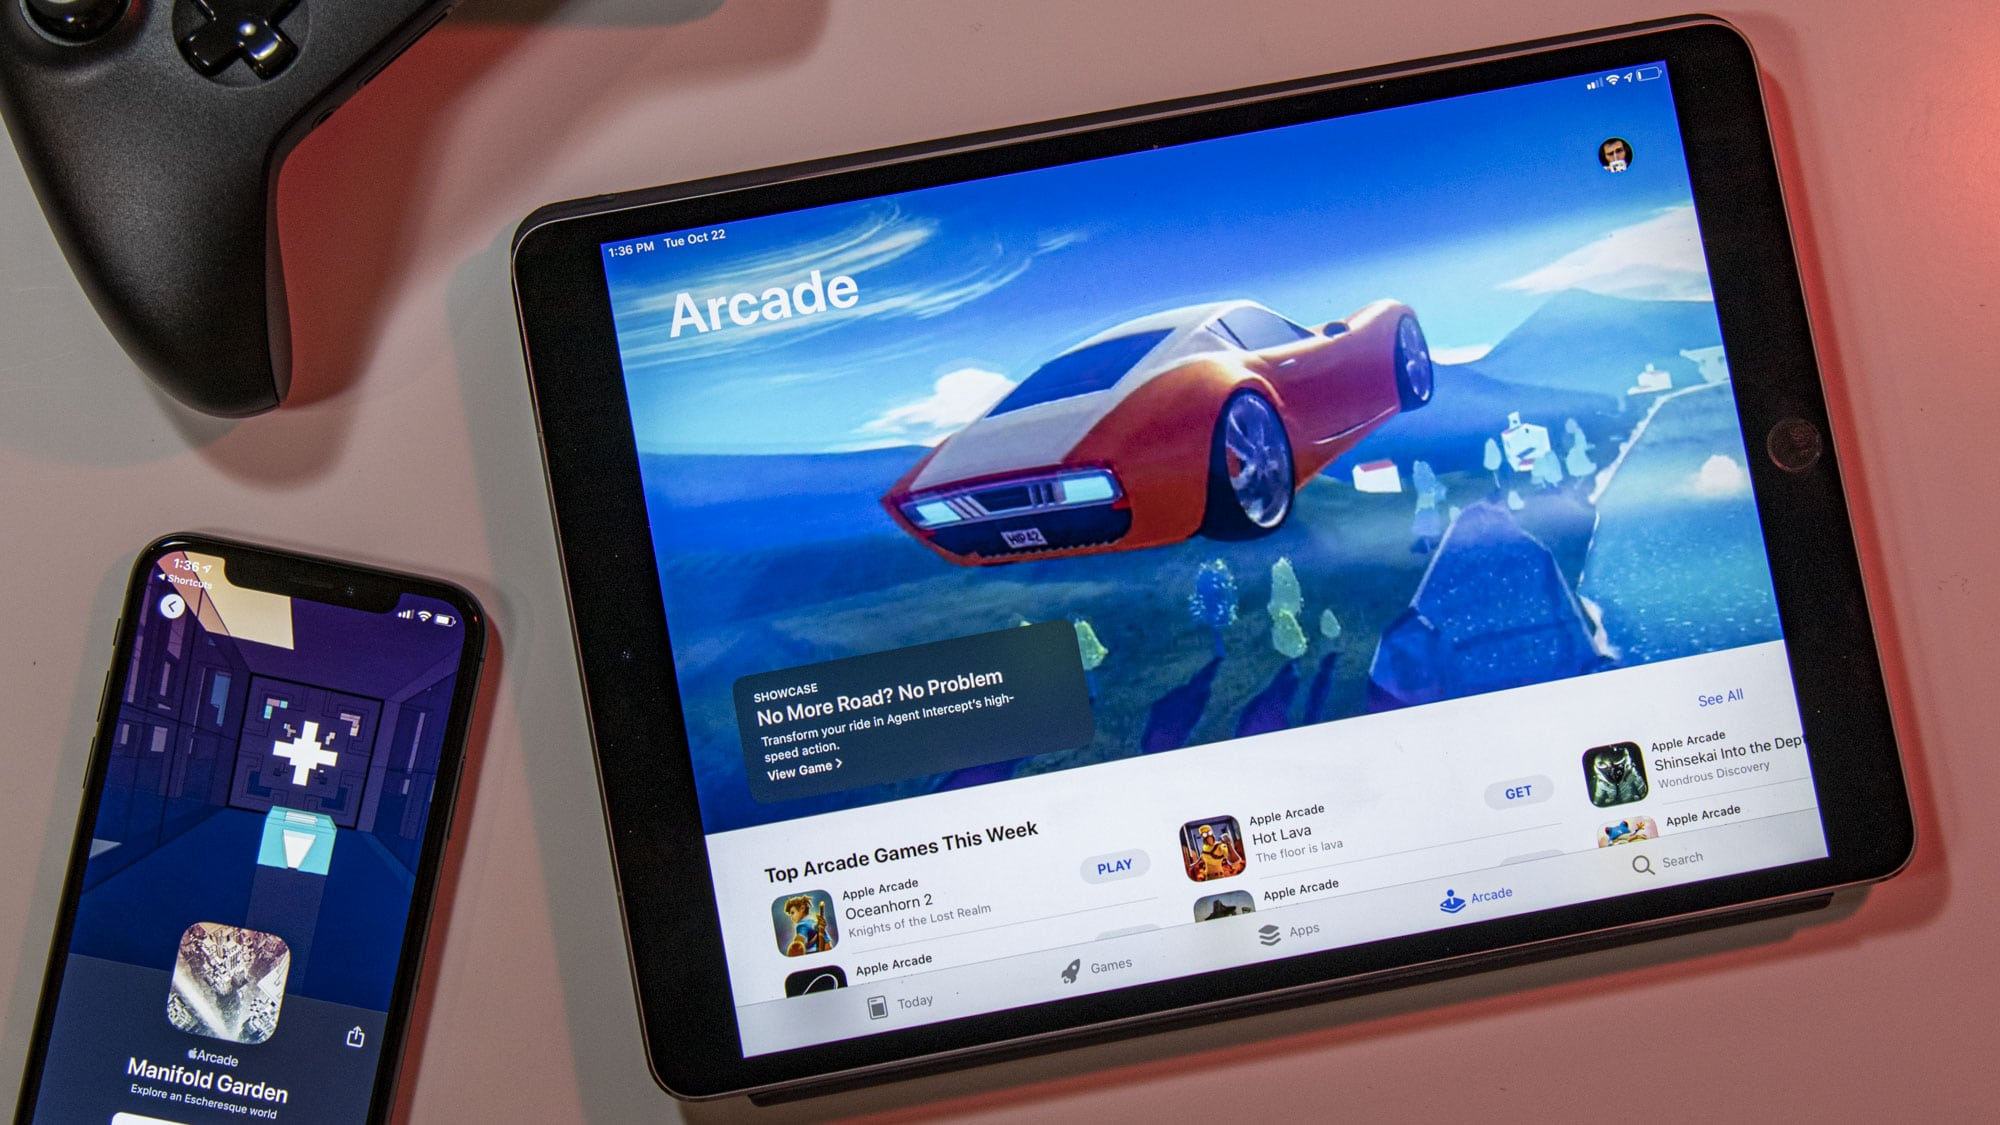 iPad browsing Apple Arcade games catalog with iPhone and Xbox Controller